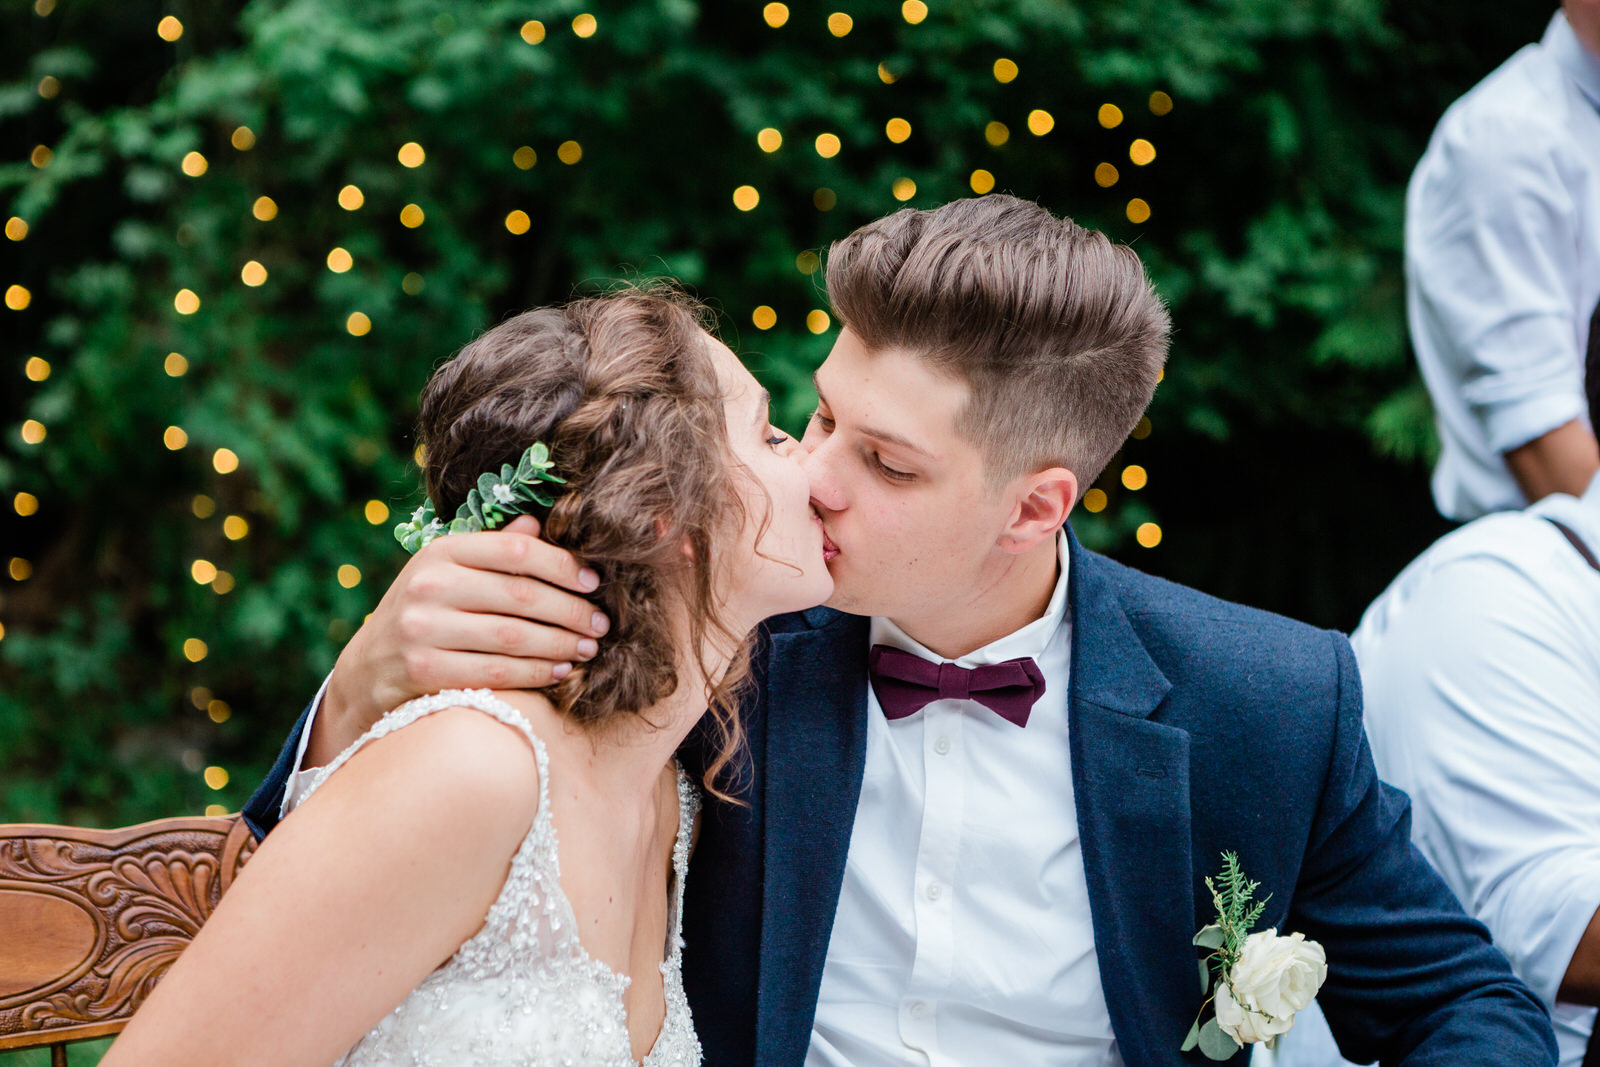 a kiss shared between the bride & groom